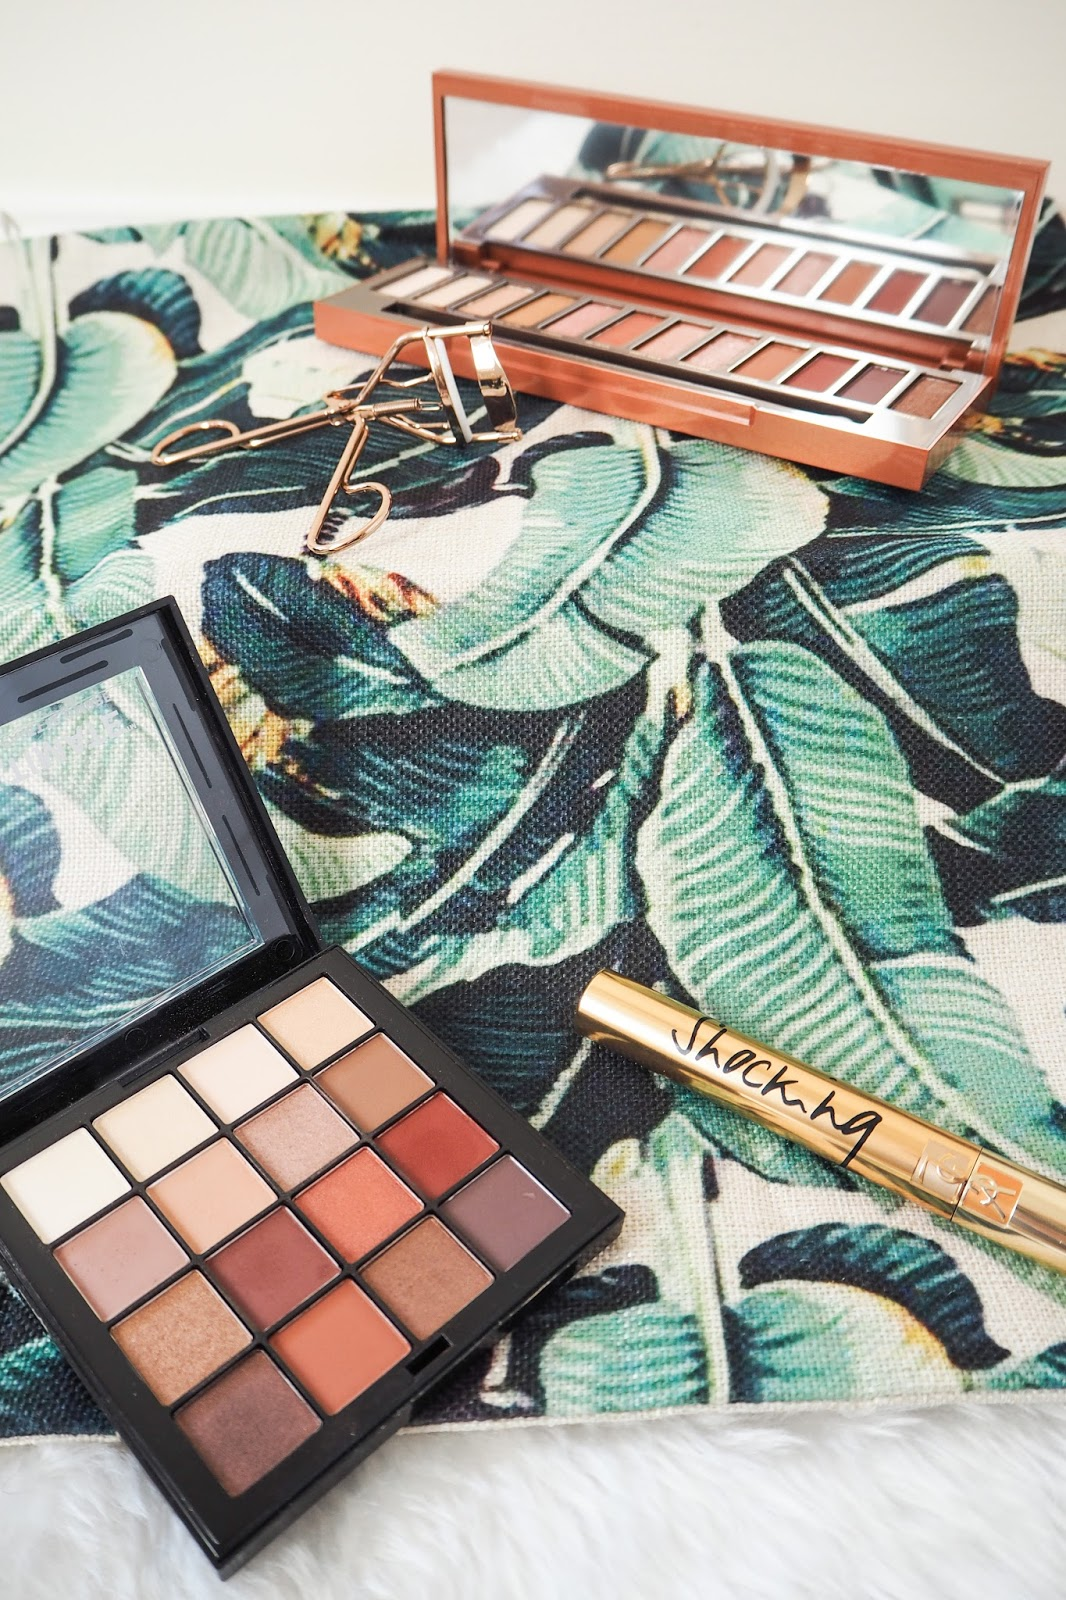 Warm neutral eyeshadow palettes from NYX and Urban Decay